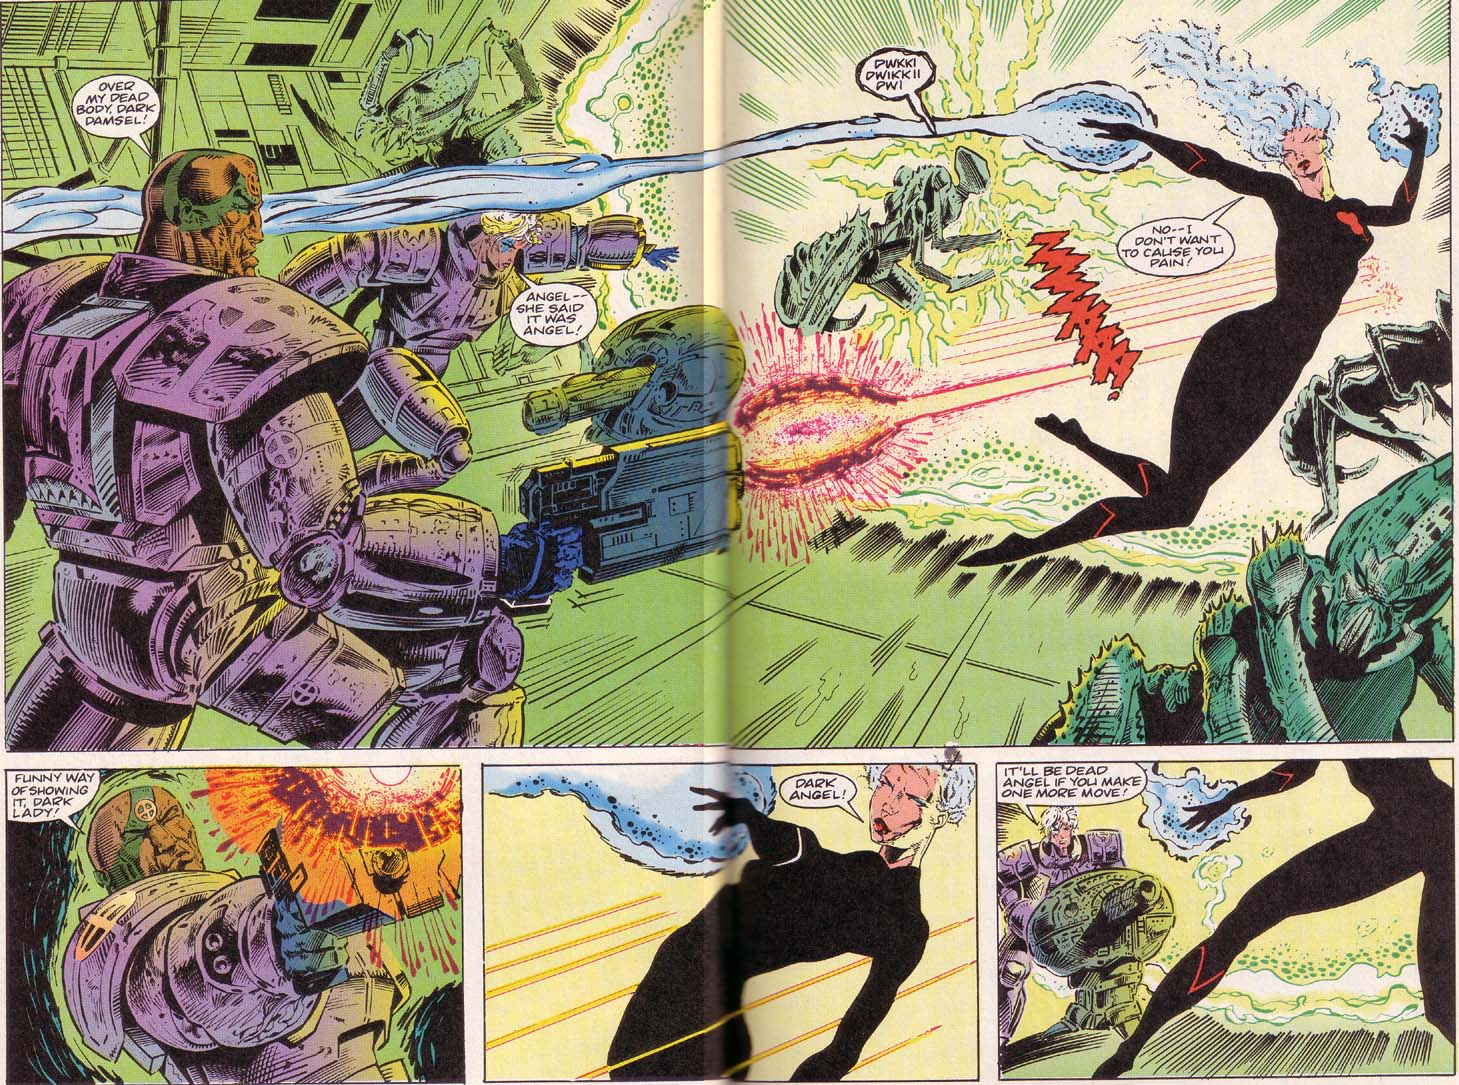 Read online Cyberspace 3000 comic -  Issue #2 - 17